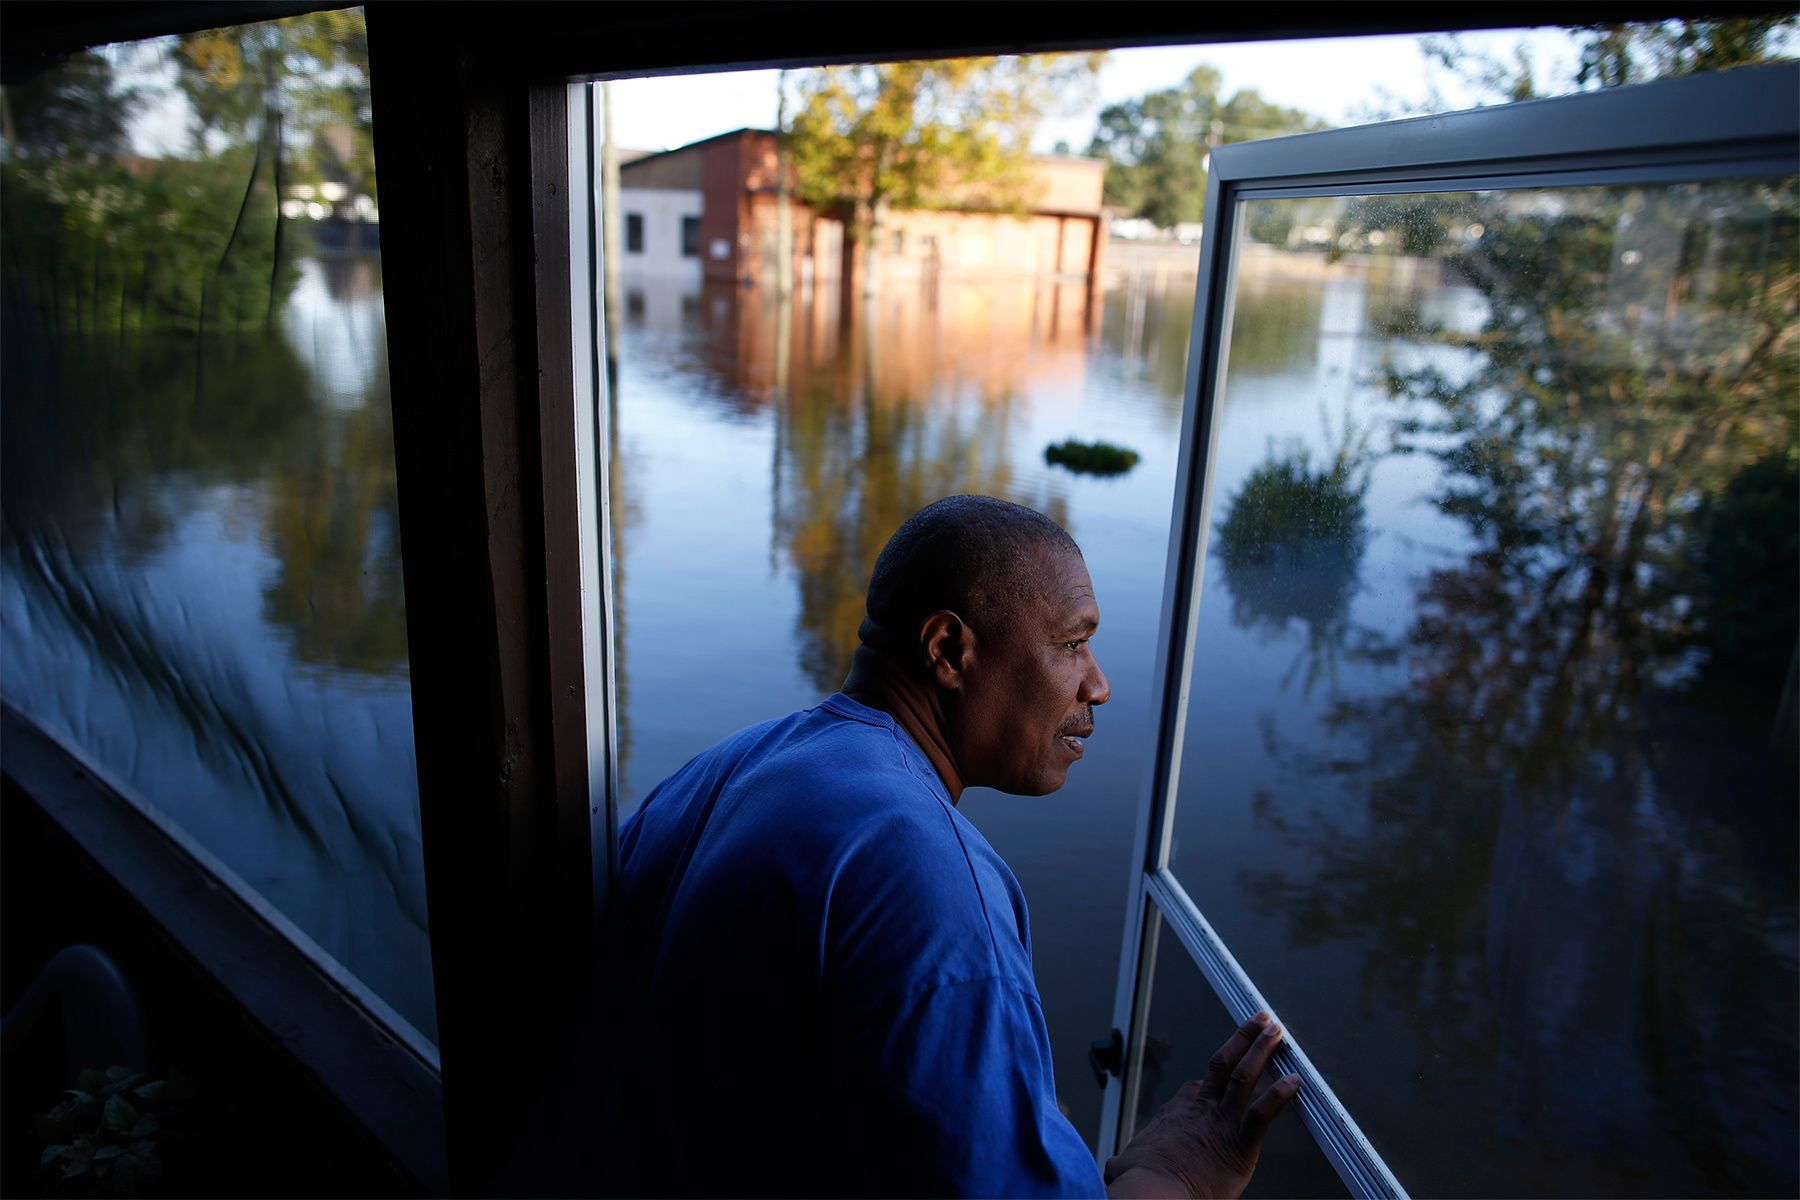 Eric McClary of West Mulberry Lane checks flood levels while checking on his flooded home after the effects of Hurricane Matthew in Goldsboro, North Carolina, U.S., October 12, 2016. REUTERS/Randall Hill